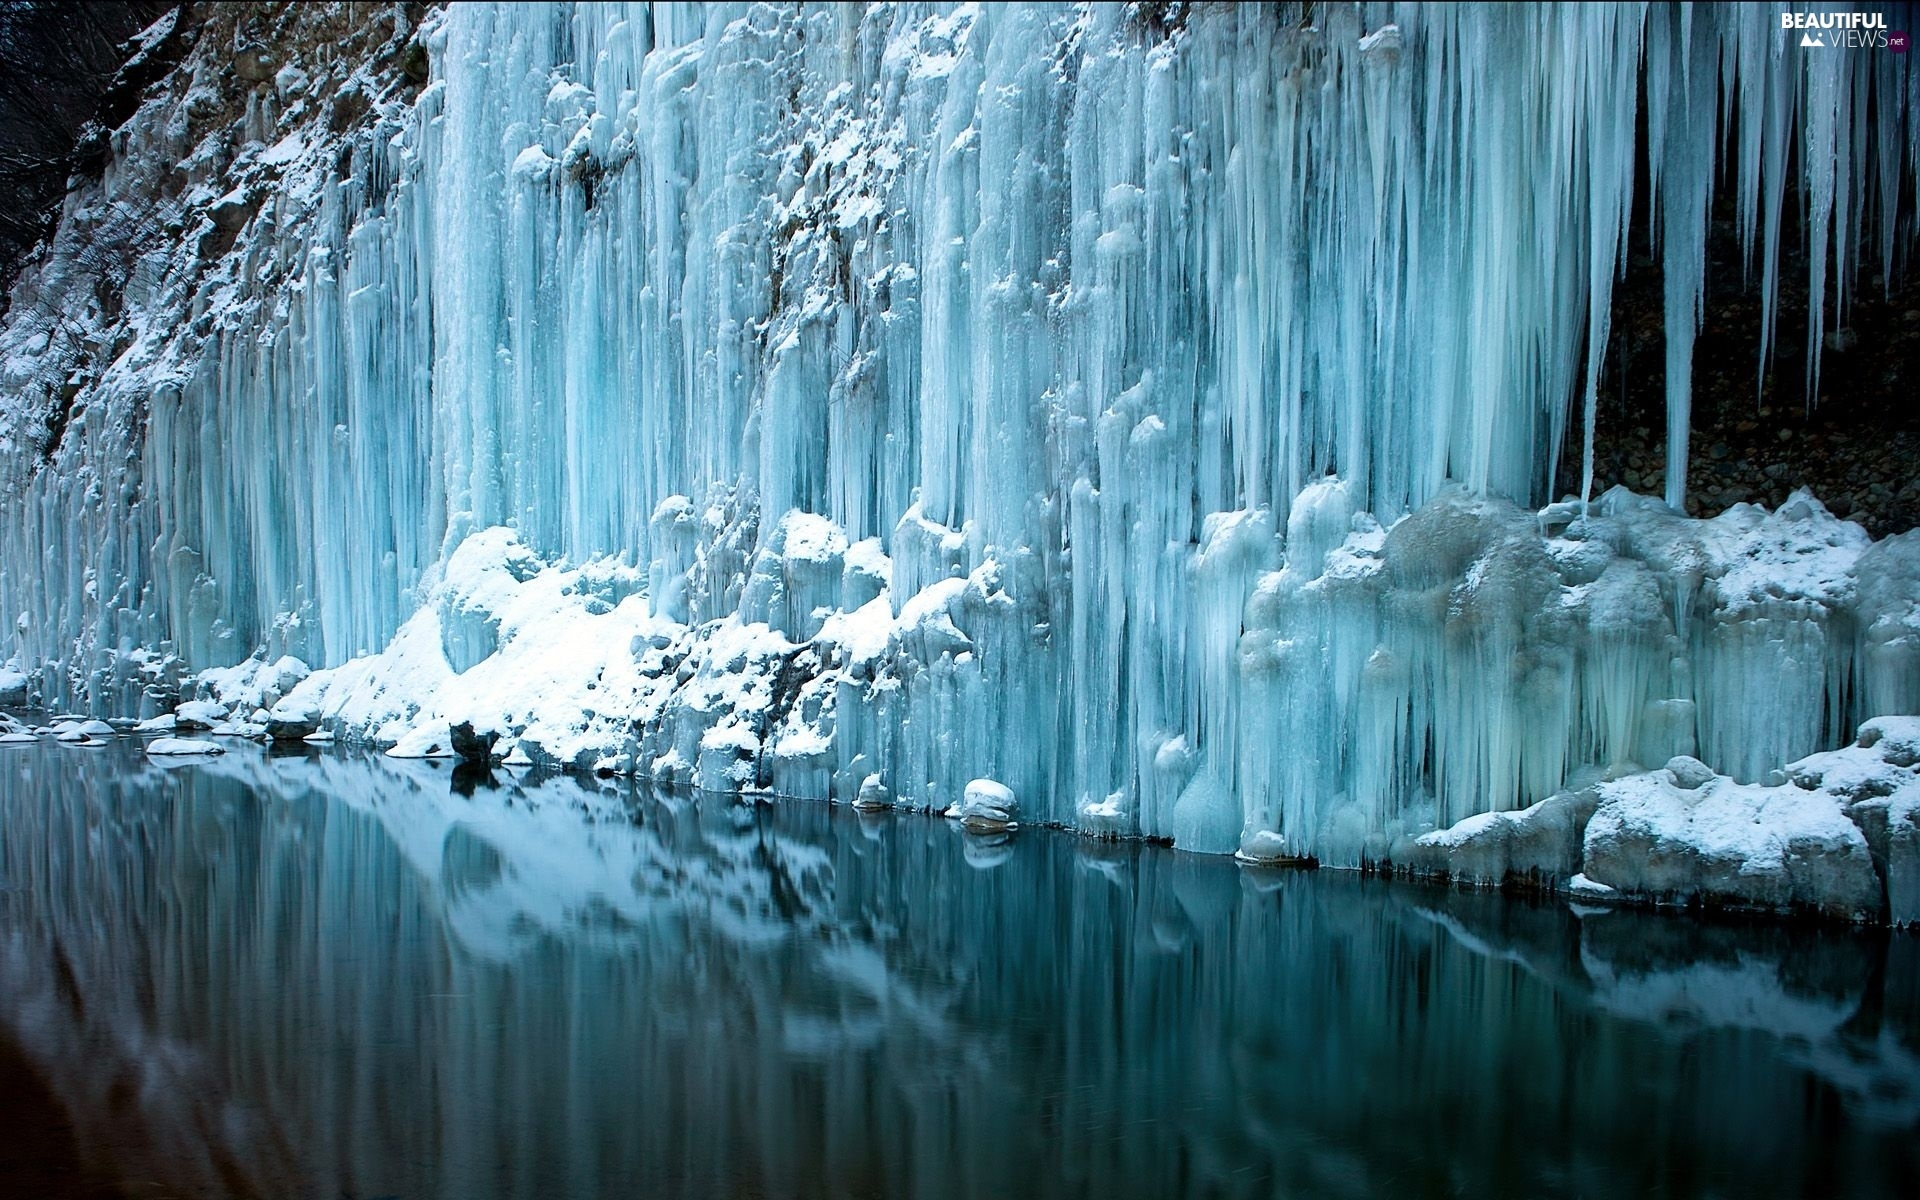 Winter frozen waterfall beautiful views wallpapers 1920x1200 - Beautiful frozen computer wallpaper ...